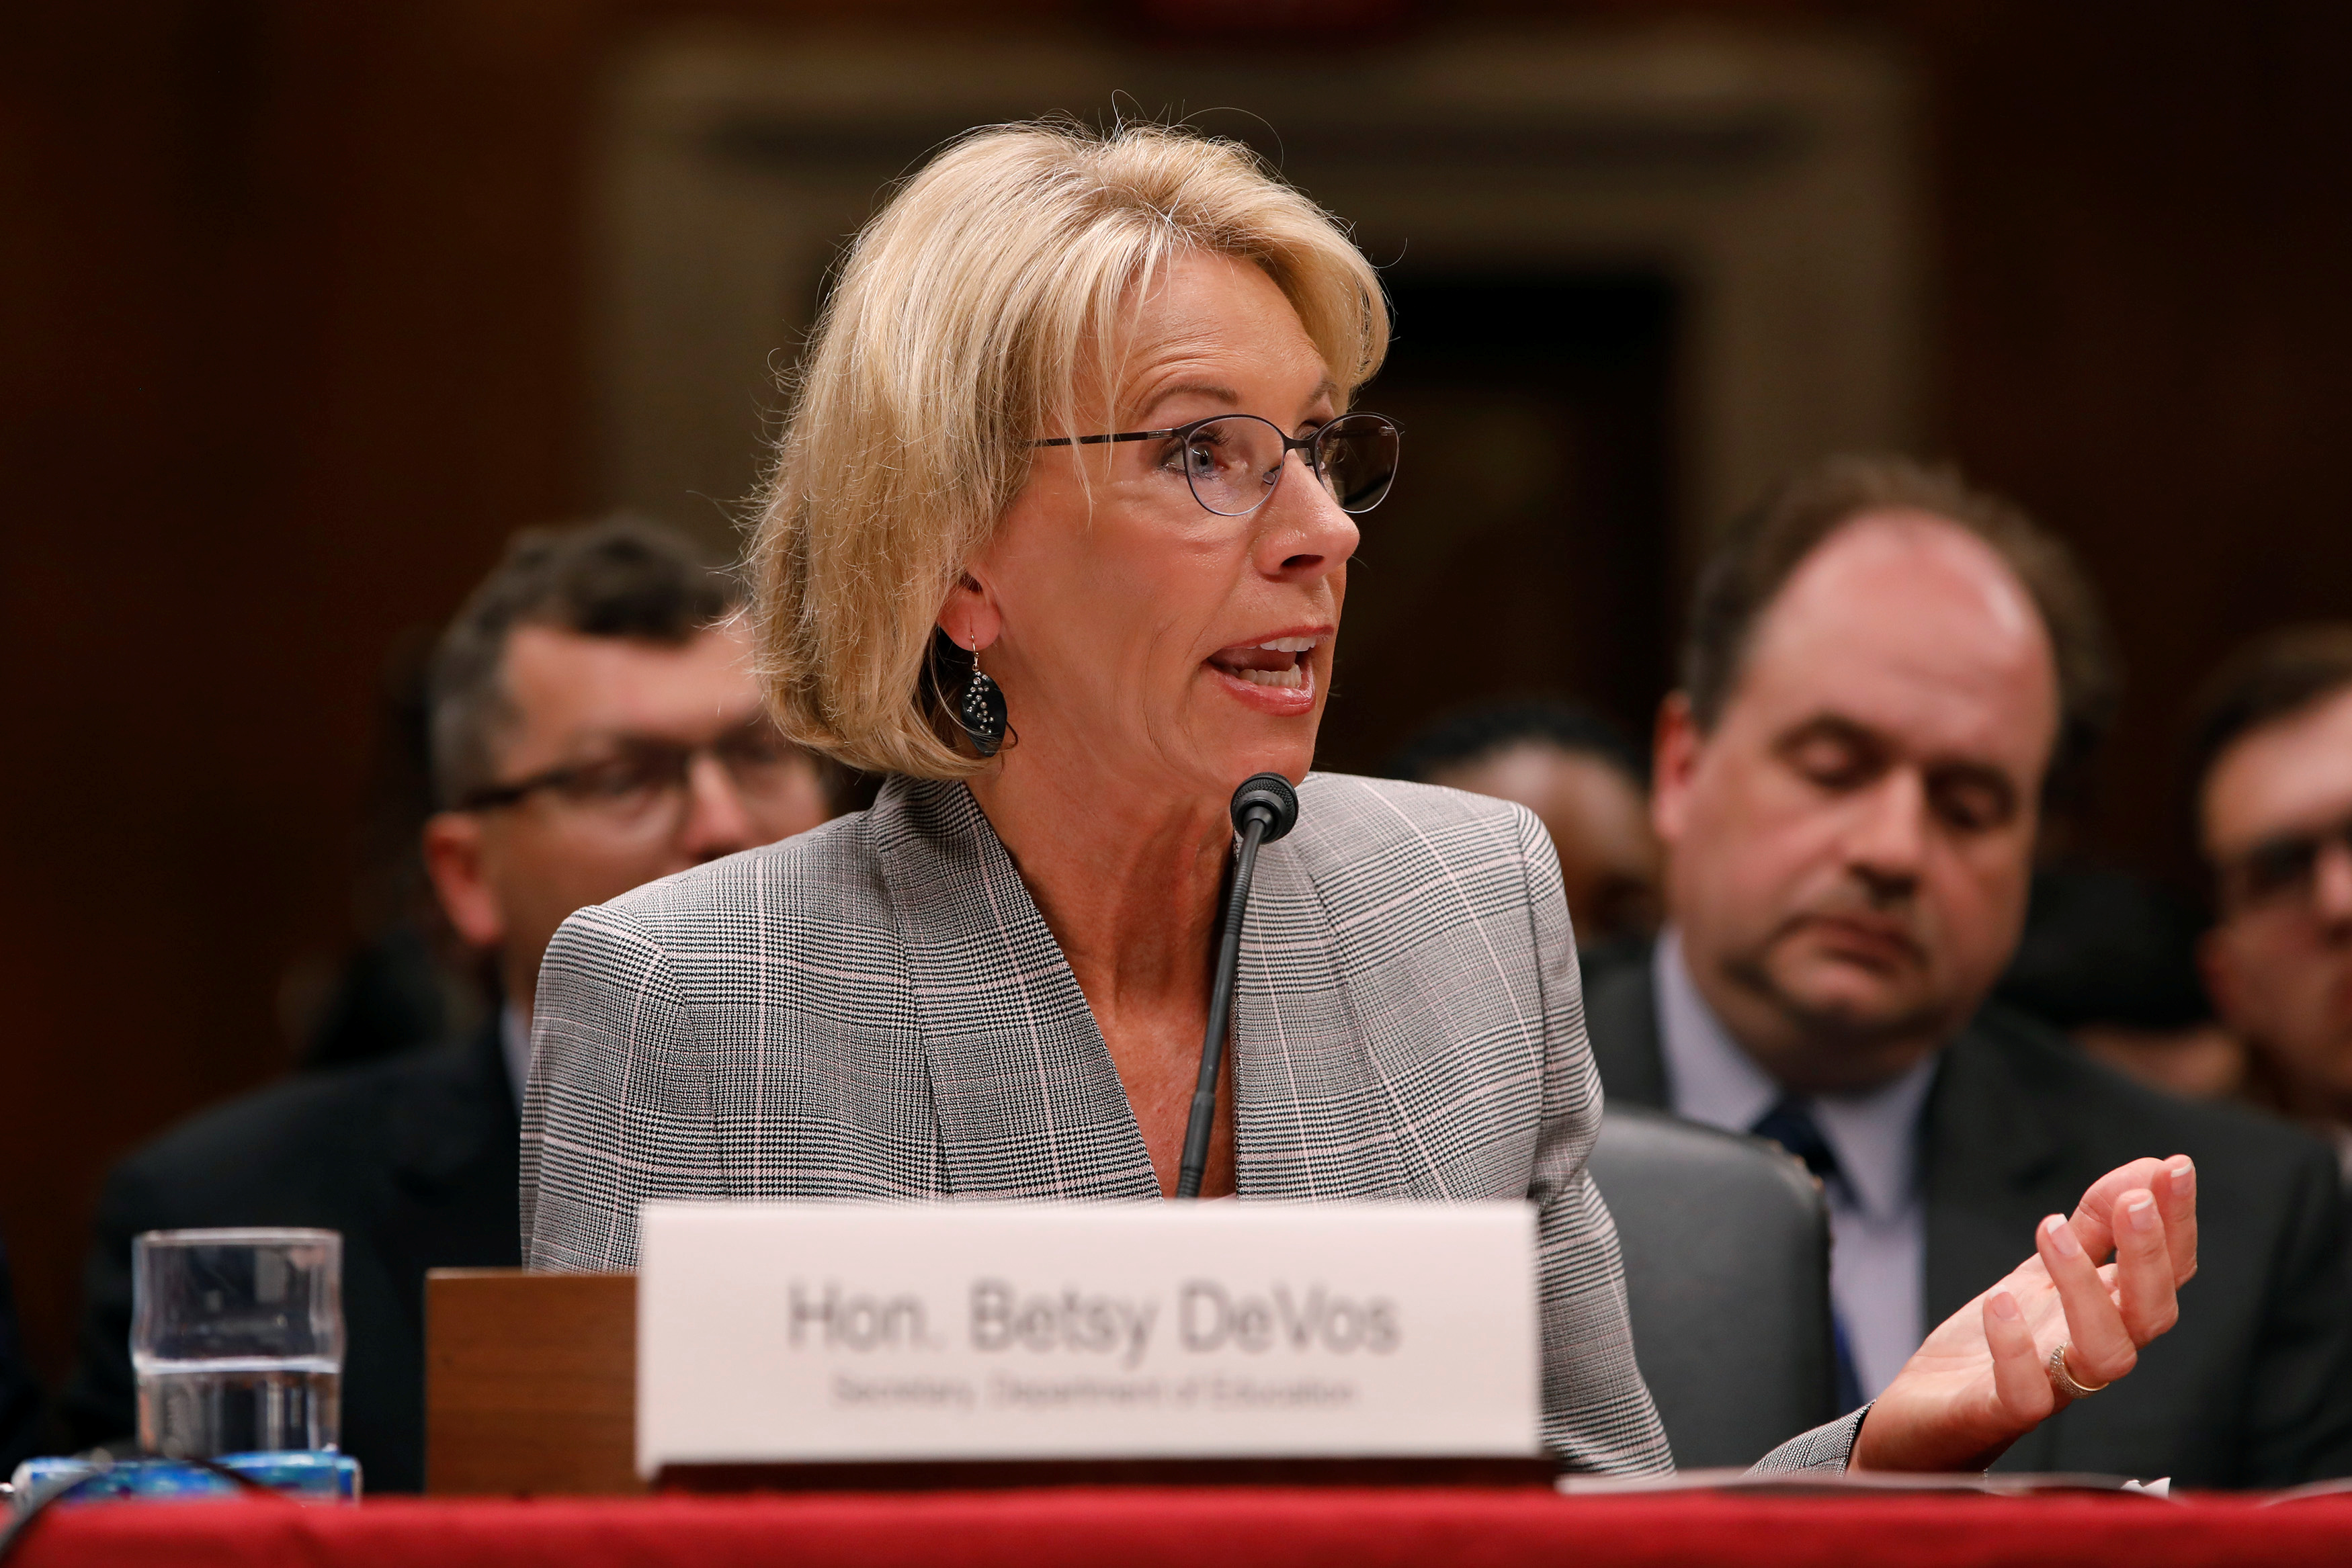 U.S. Education Secretary Betsy DeVos testifies before the Labor, Health and Human Services, Education, and Related Agencies subcommittee of the Senate Appropriations Committee on Capitol Hill in Washington, D.C. June 6, 2017. REUTERS/Aaron P. Bernstein - RTX39AXI